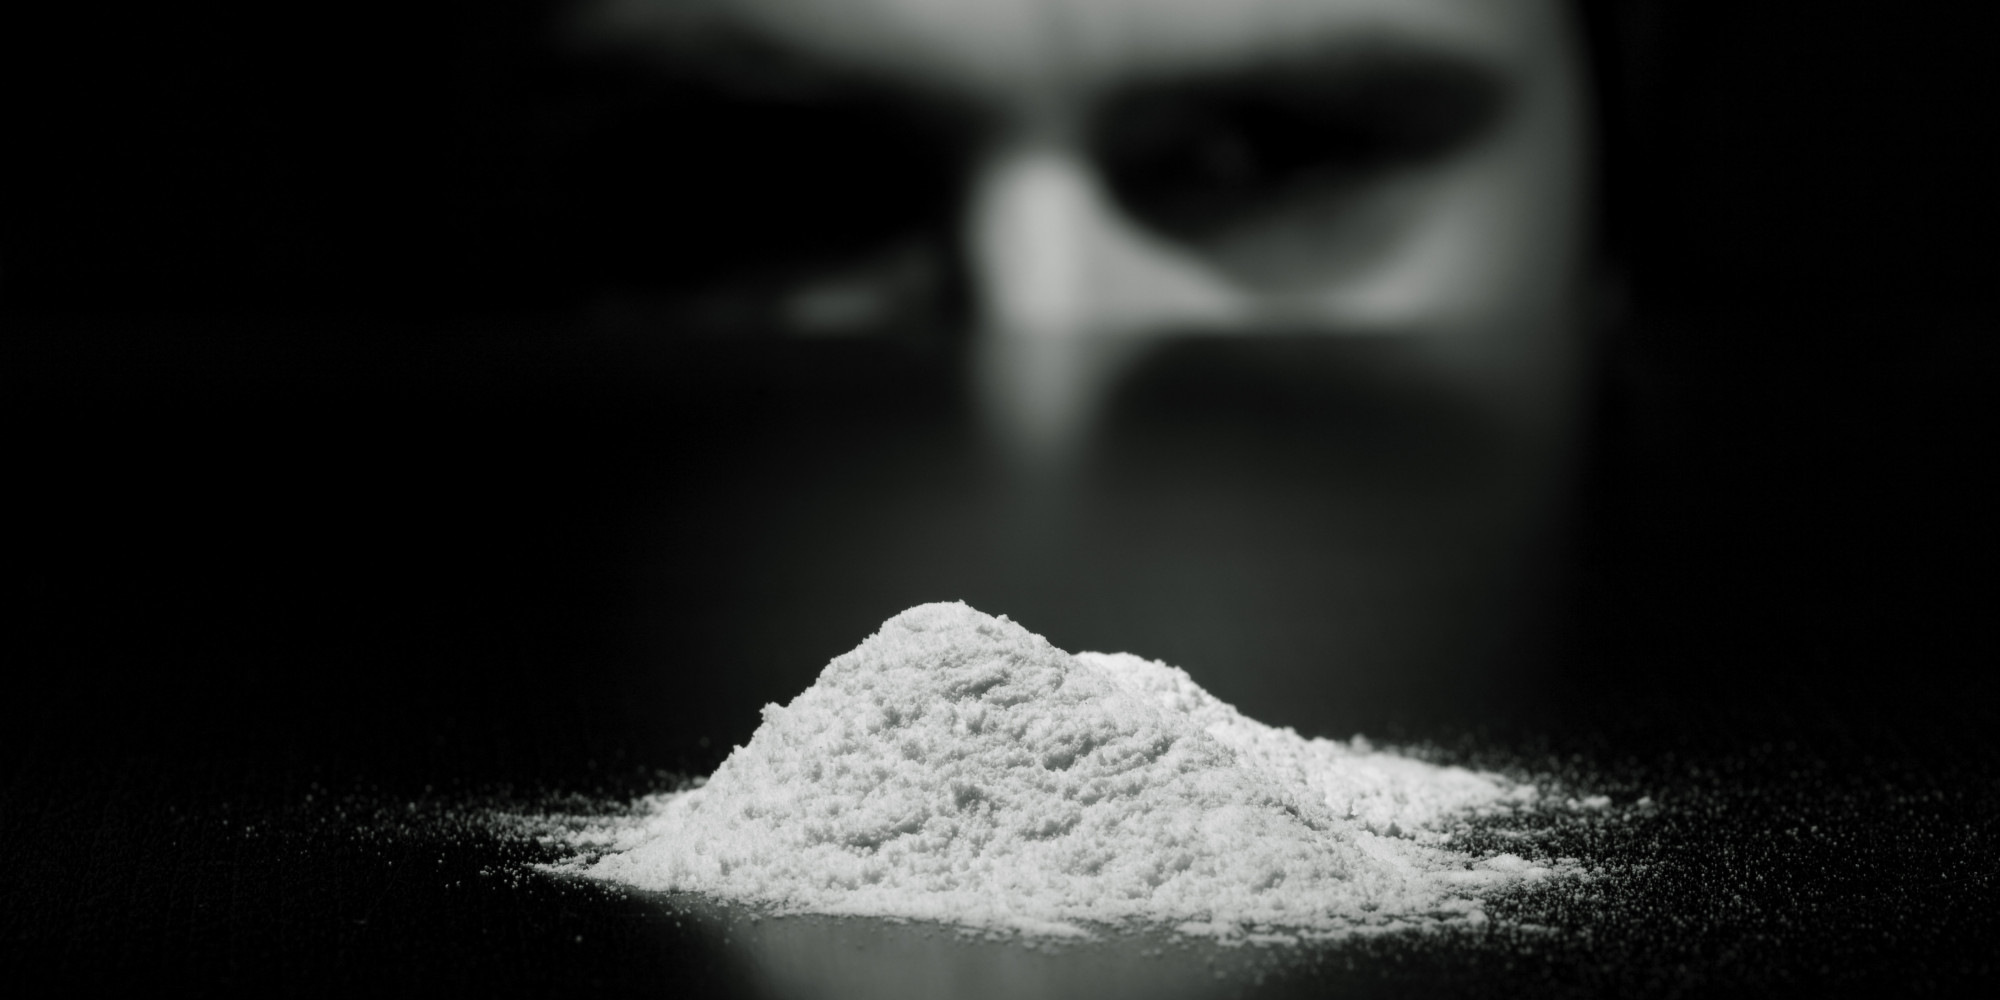 cocaine usage One of the most significant long-term effects of cocaine use is damage to the nose a septal perforation , or a hole in the septum is a condition that is commonly caused from snorting or sniffing cocaine through the nose.